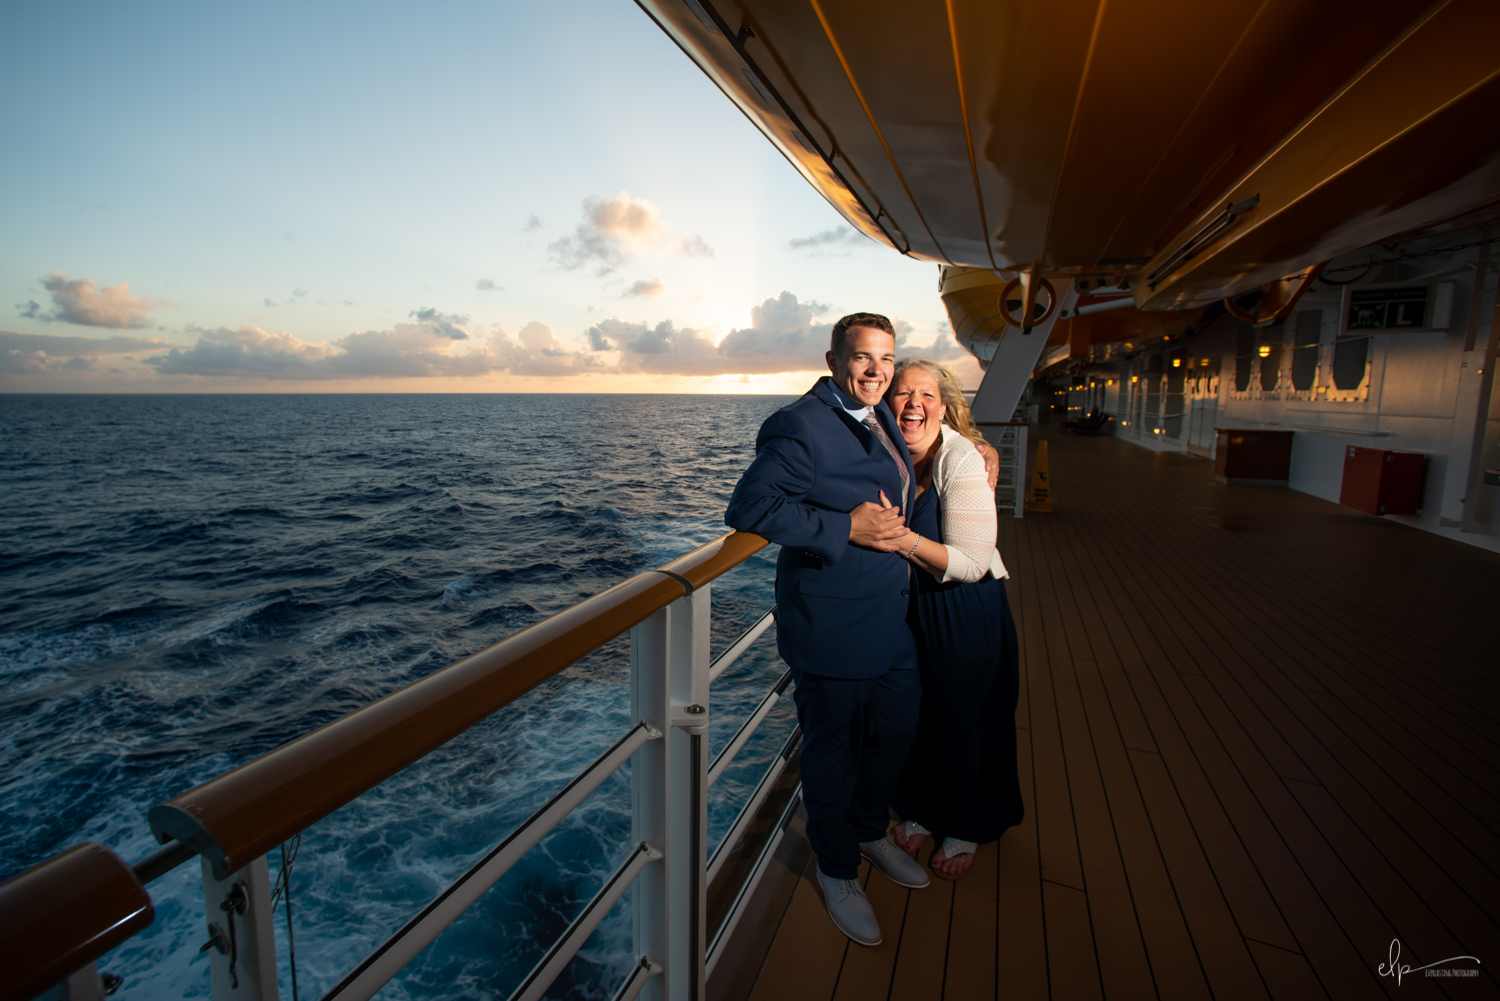 Disney-Cruise-Line-Family-Portrait-Photography.jpg